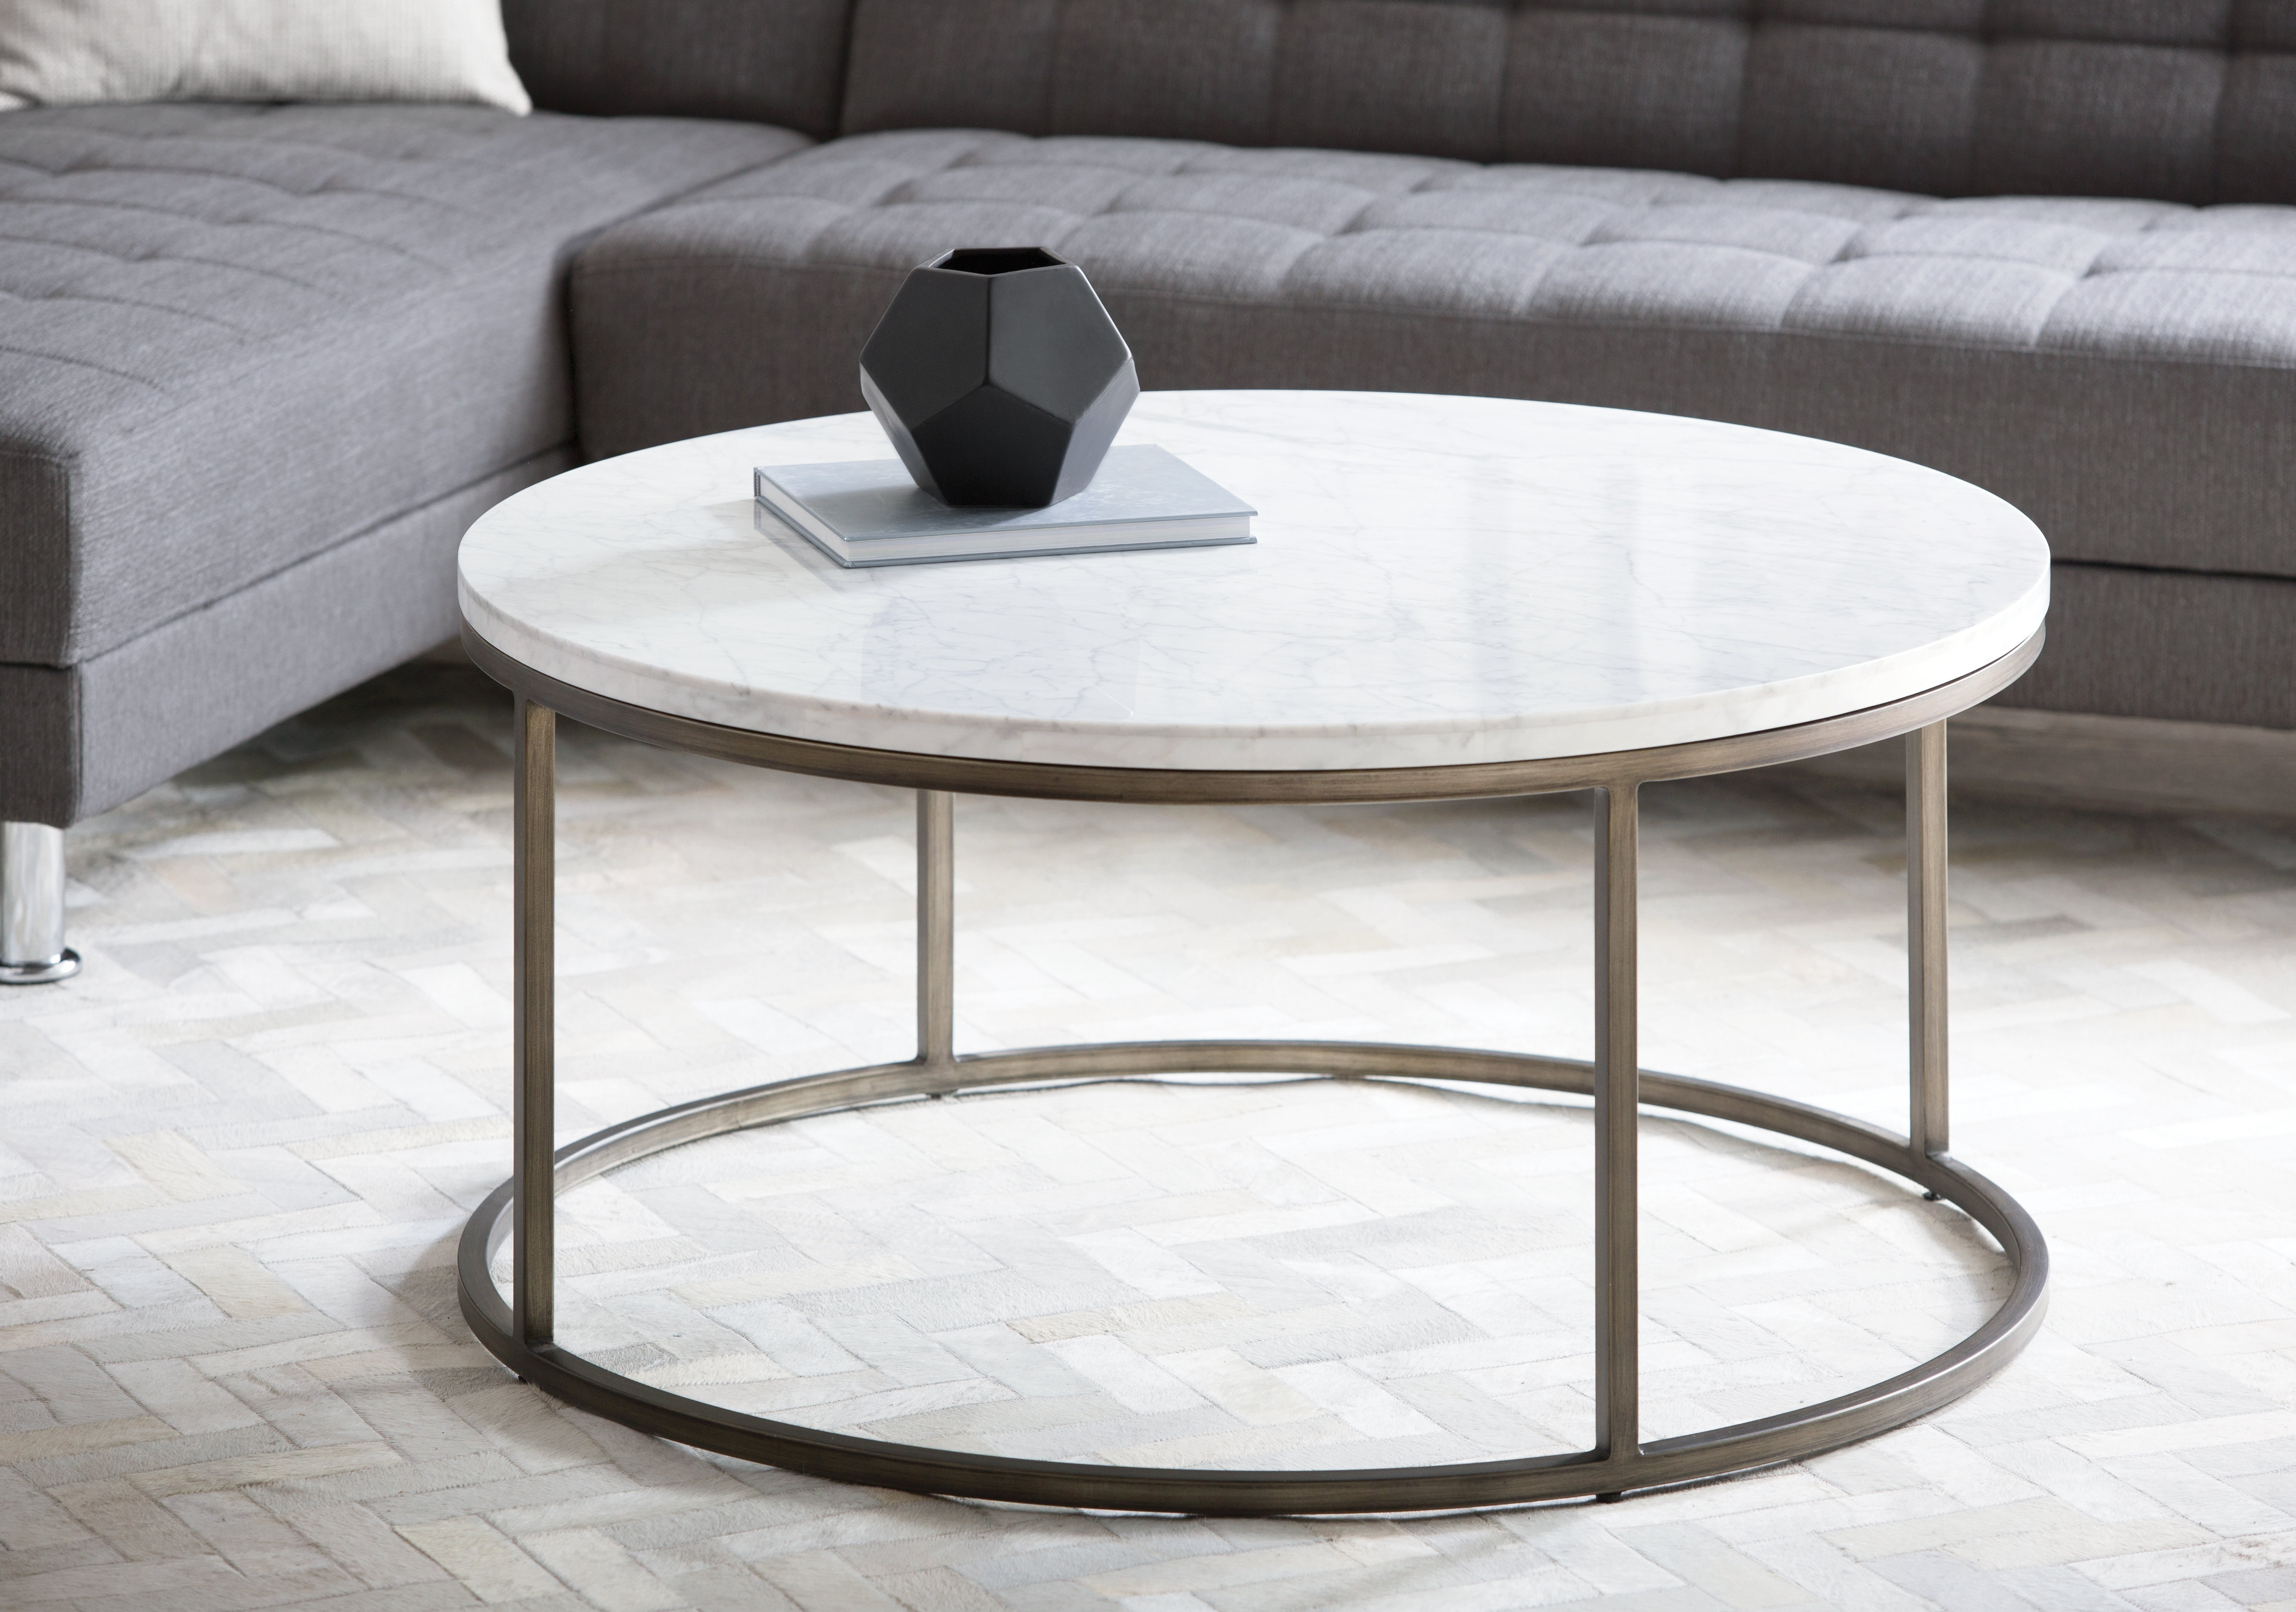 Brayden Studio Louisa Coffee Table & Reviews | Wayfair intended for 2 Tone Grey And White Marble Coffee Tables (Image 6 of 30)